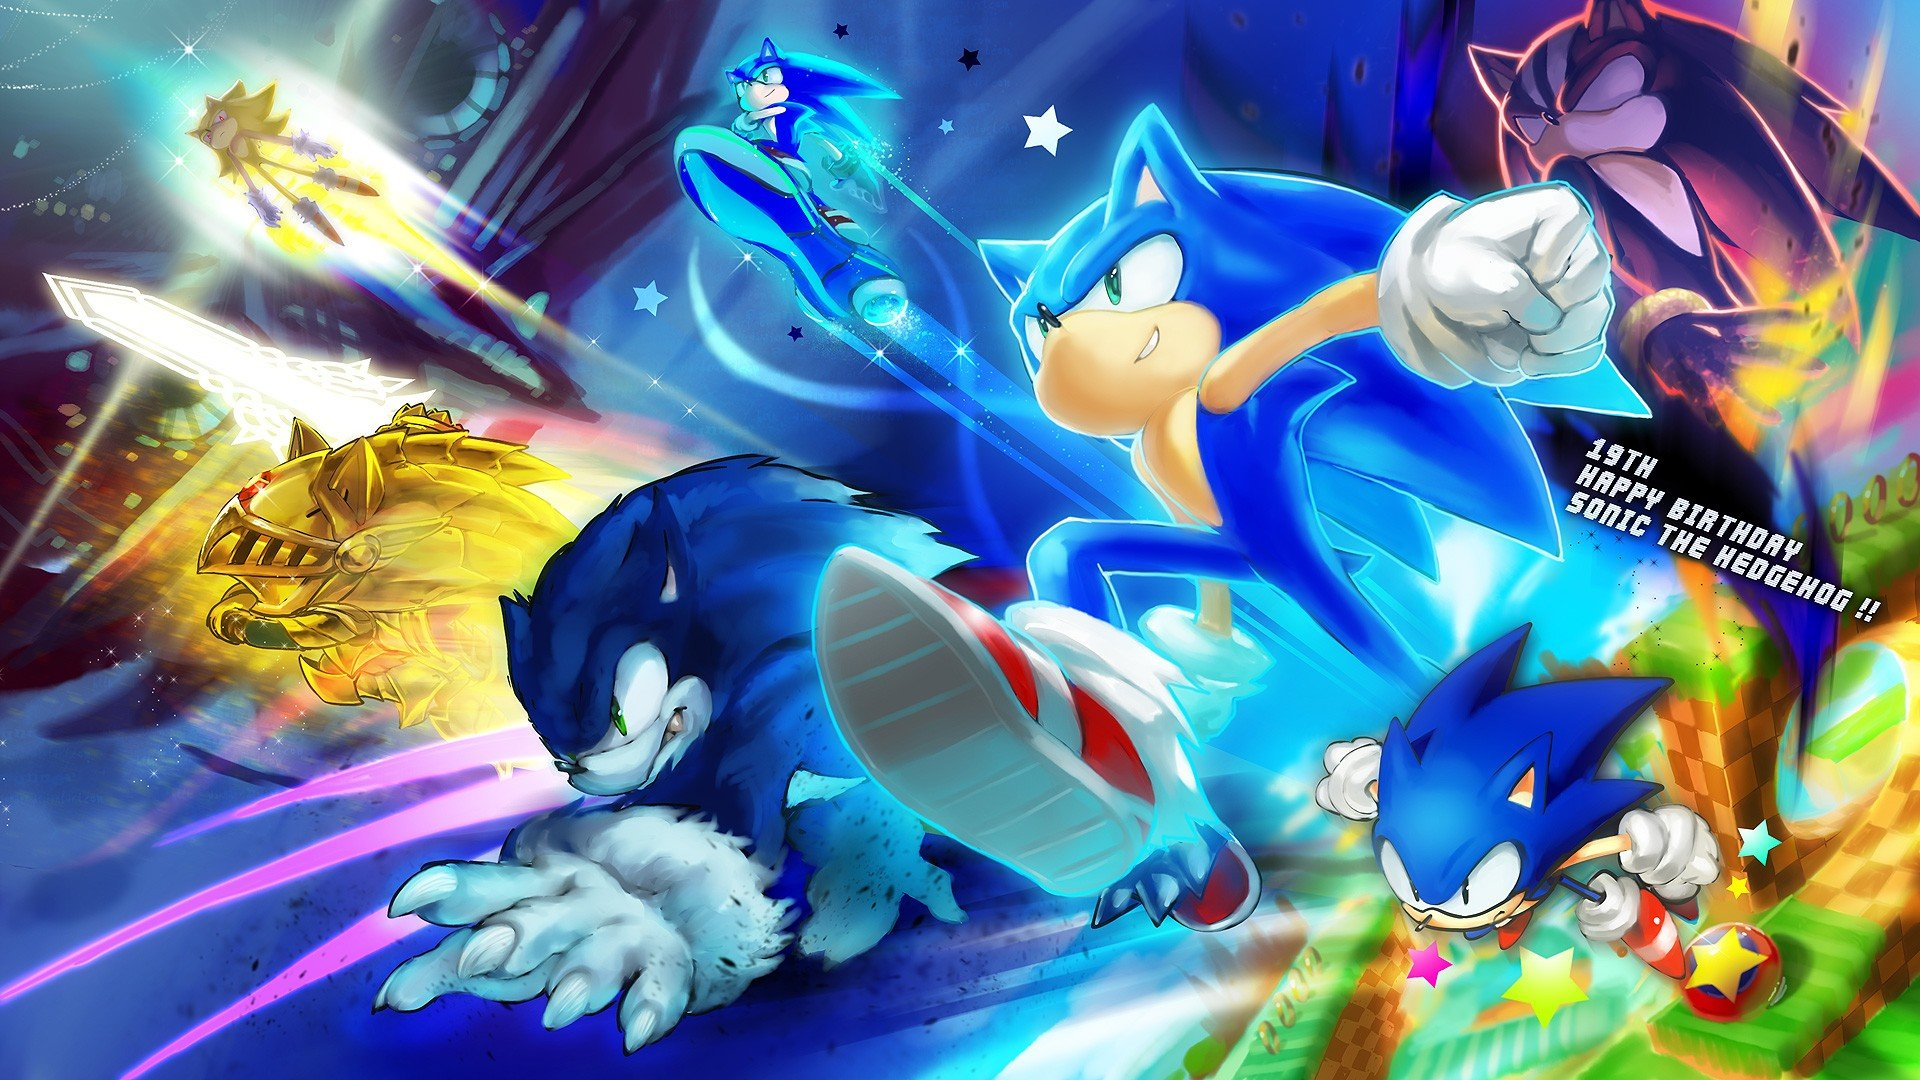 Sonic The Hedgehog Sonic Happy Birthday Wallpaper 1920x1080 297604 Wallpaperup